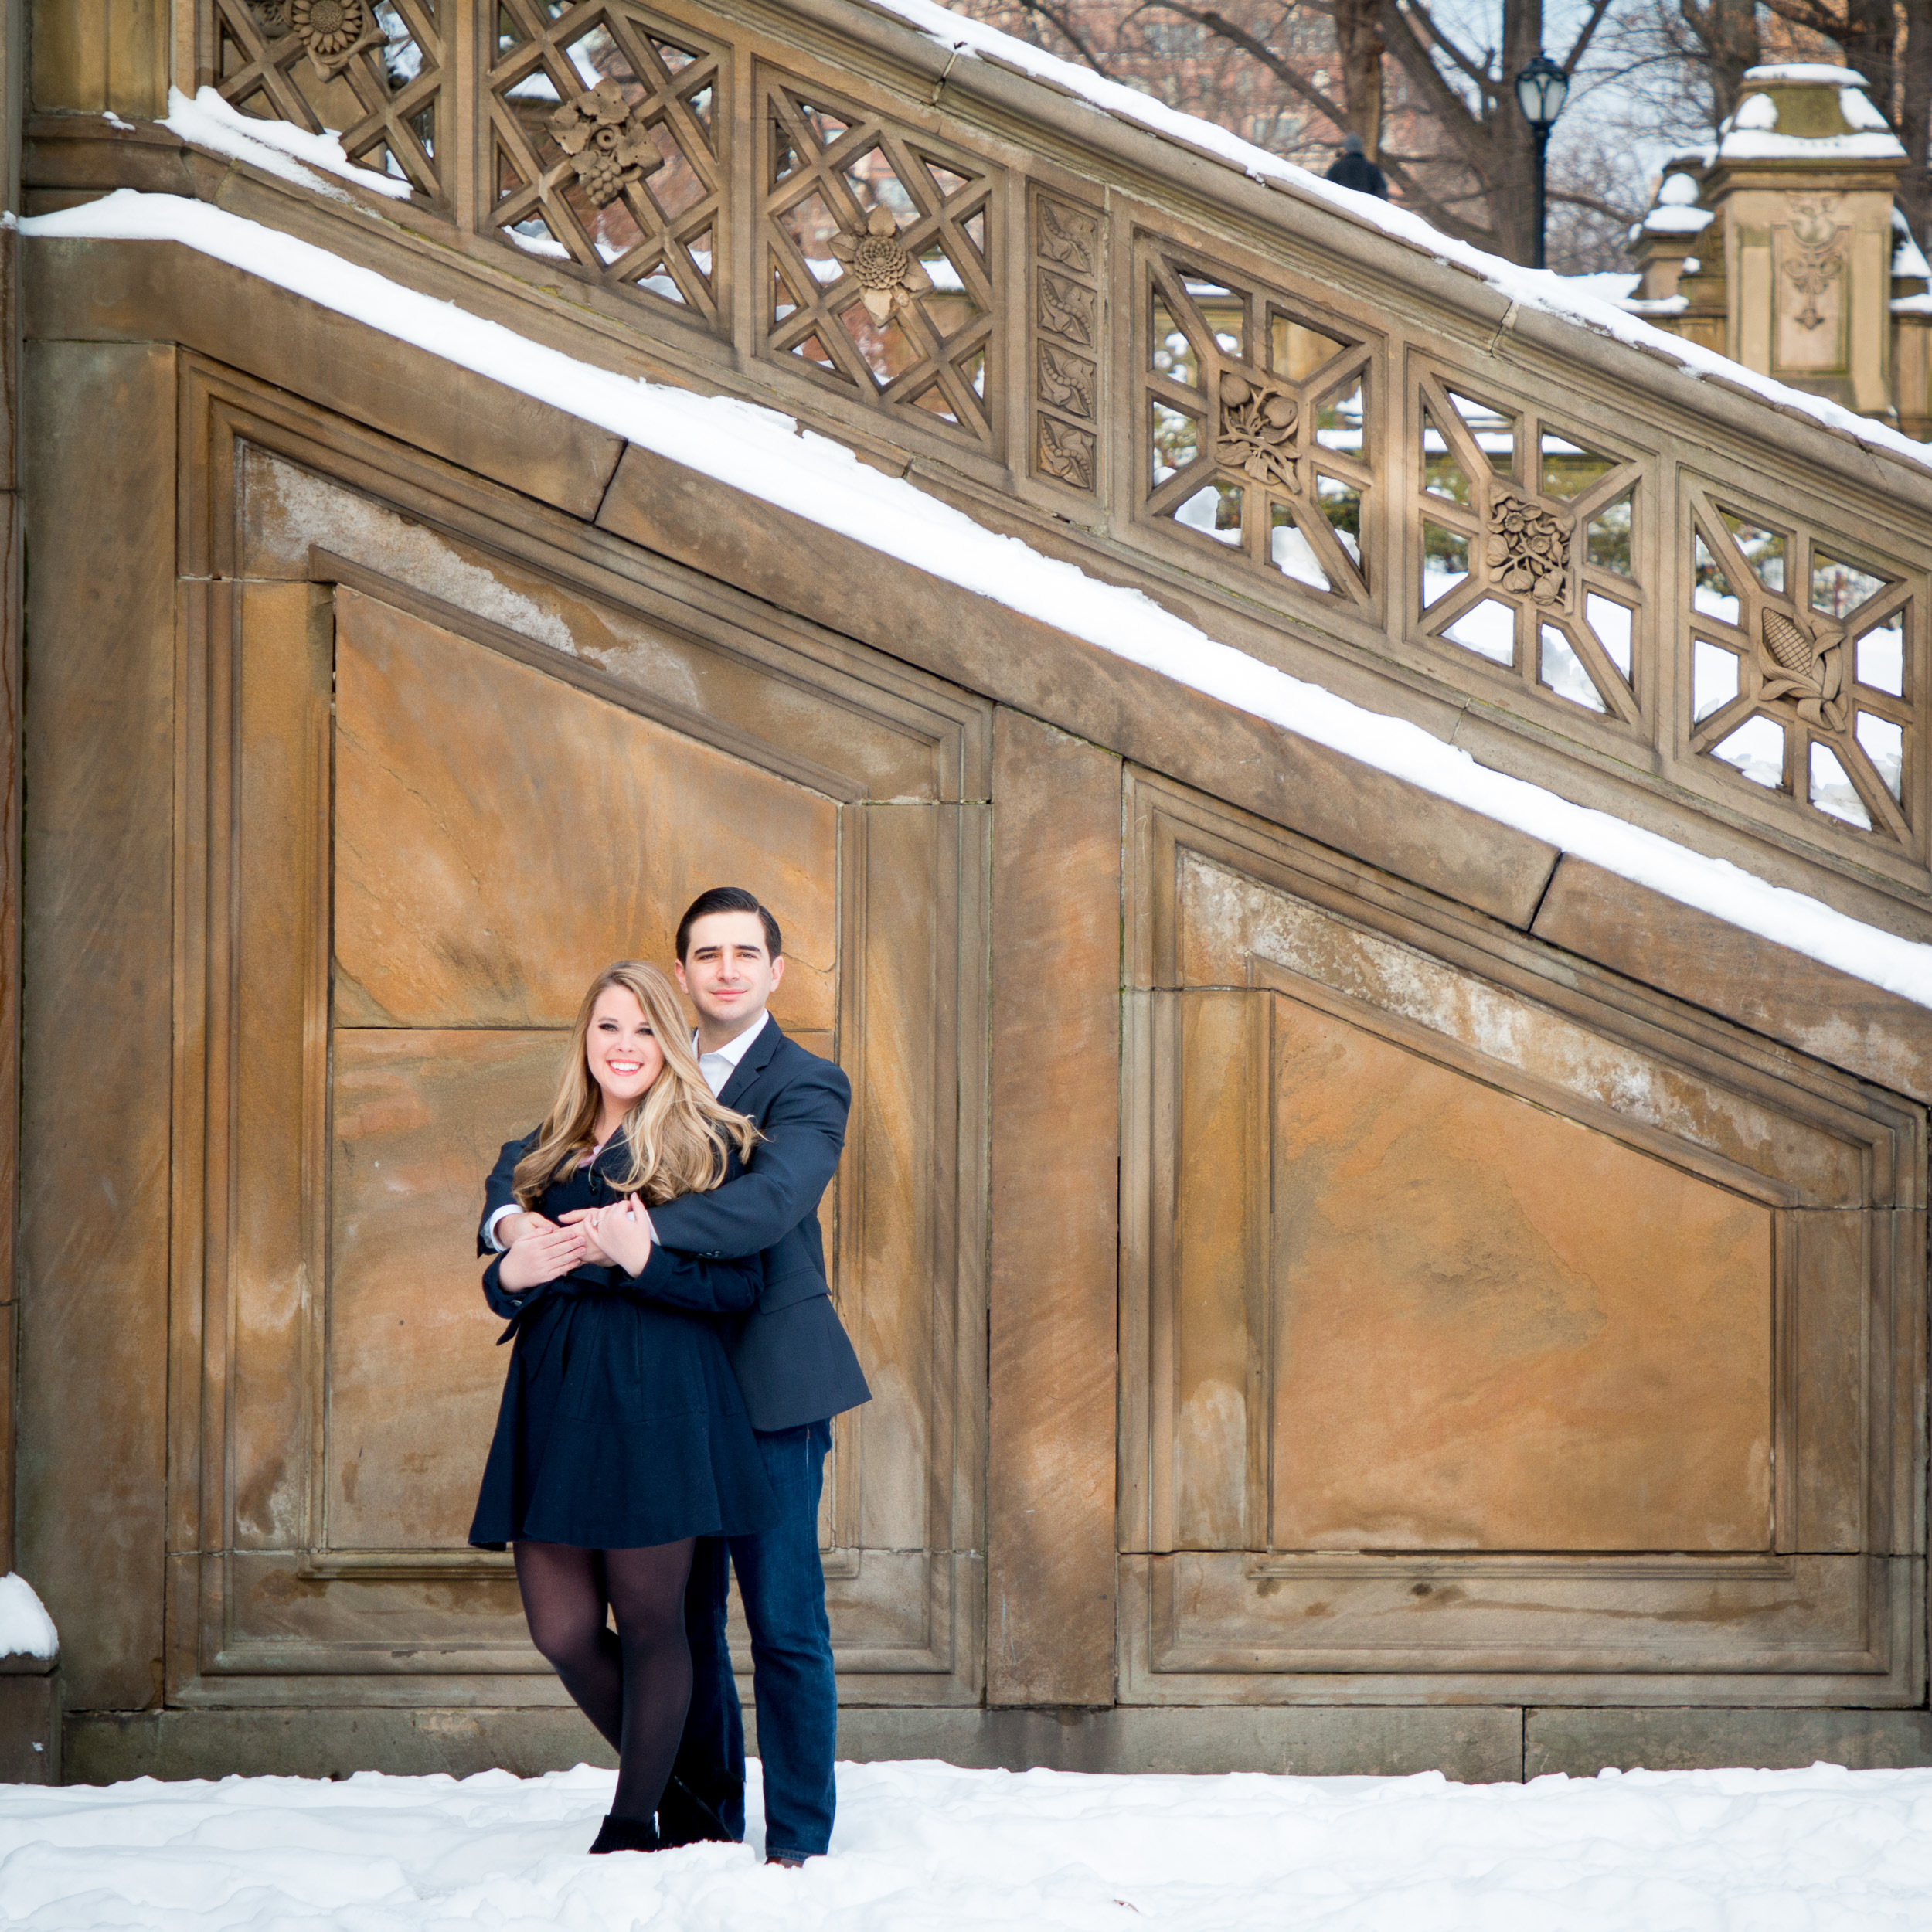 Engaged Couple by snowy Bethesda Terrace stairs